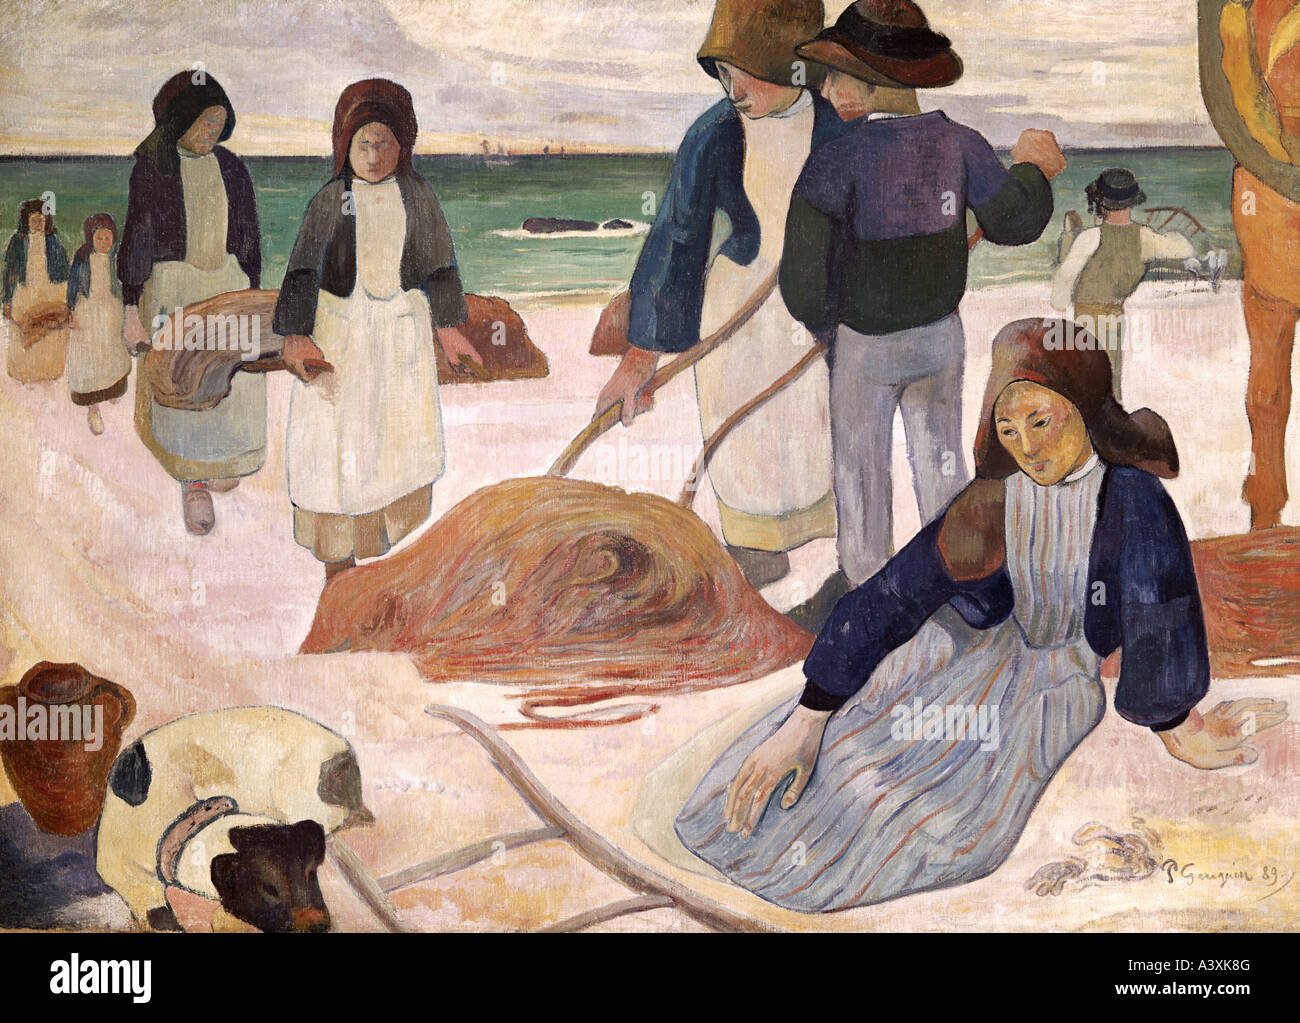 'Fine Arts, Gauguin, Paul, (1848 - 1903), peinture, 'collectors' algues Breton, 1889, Folkwang Museum, Photo Stock